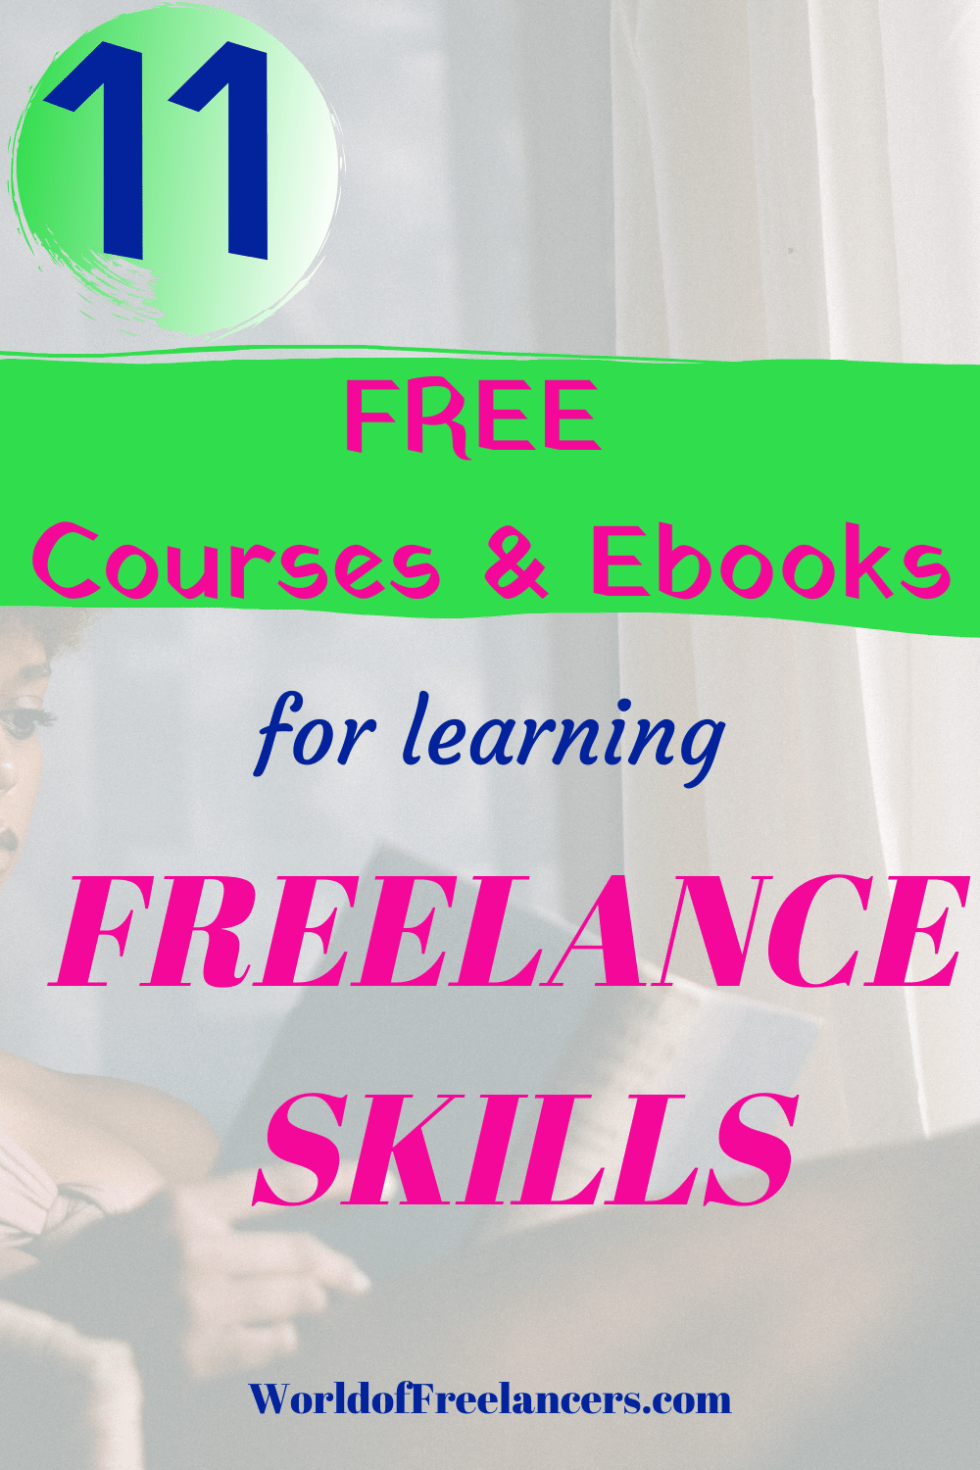 11 free courses and ebooks for learning freelance skills